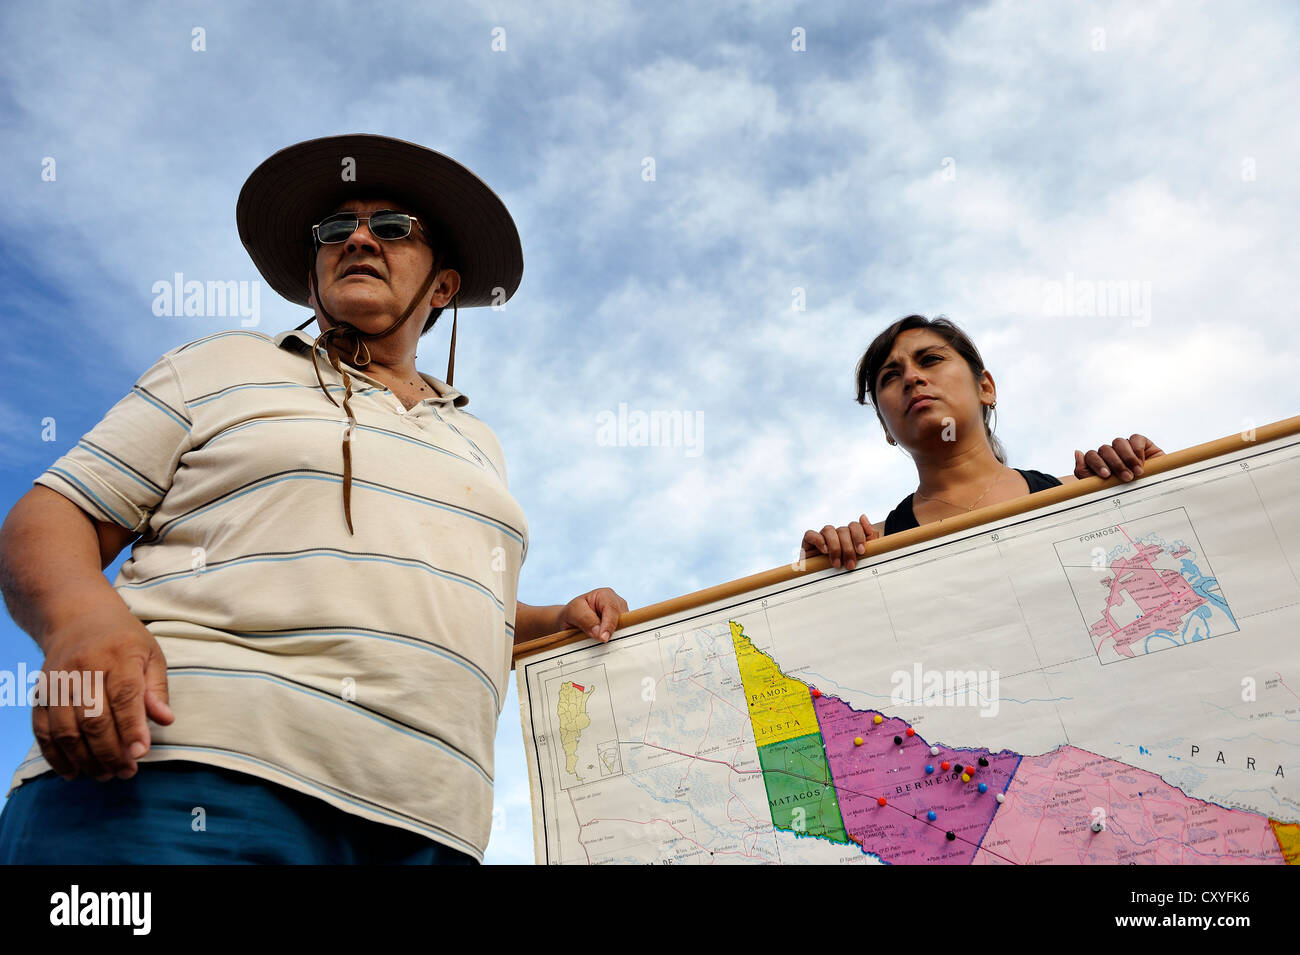 Environmental activists with a map of the floodplains of the Pilcomayo river, the area is being destroyed by a project - Stock Image